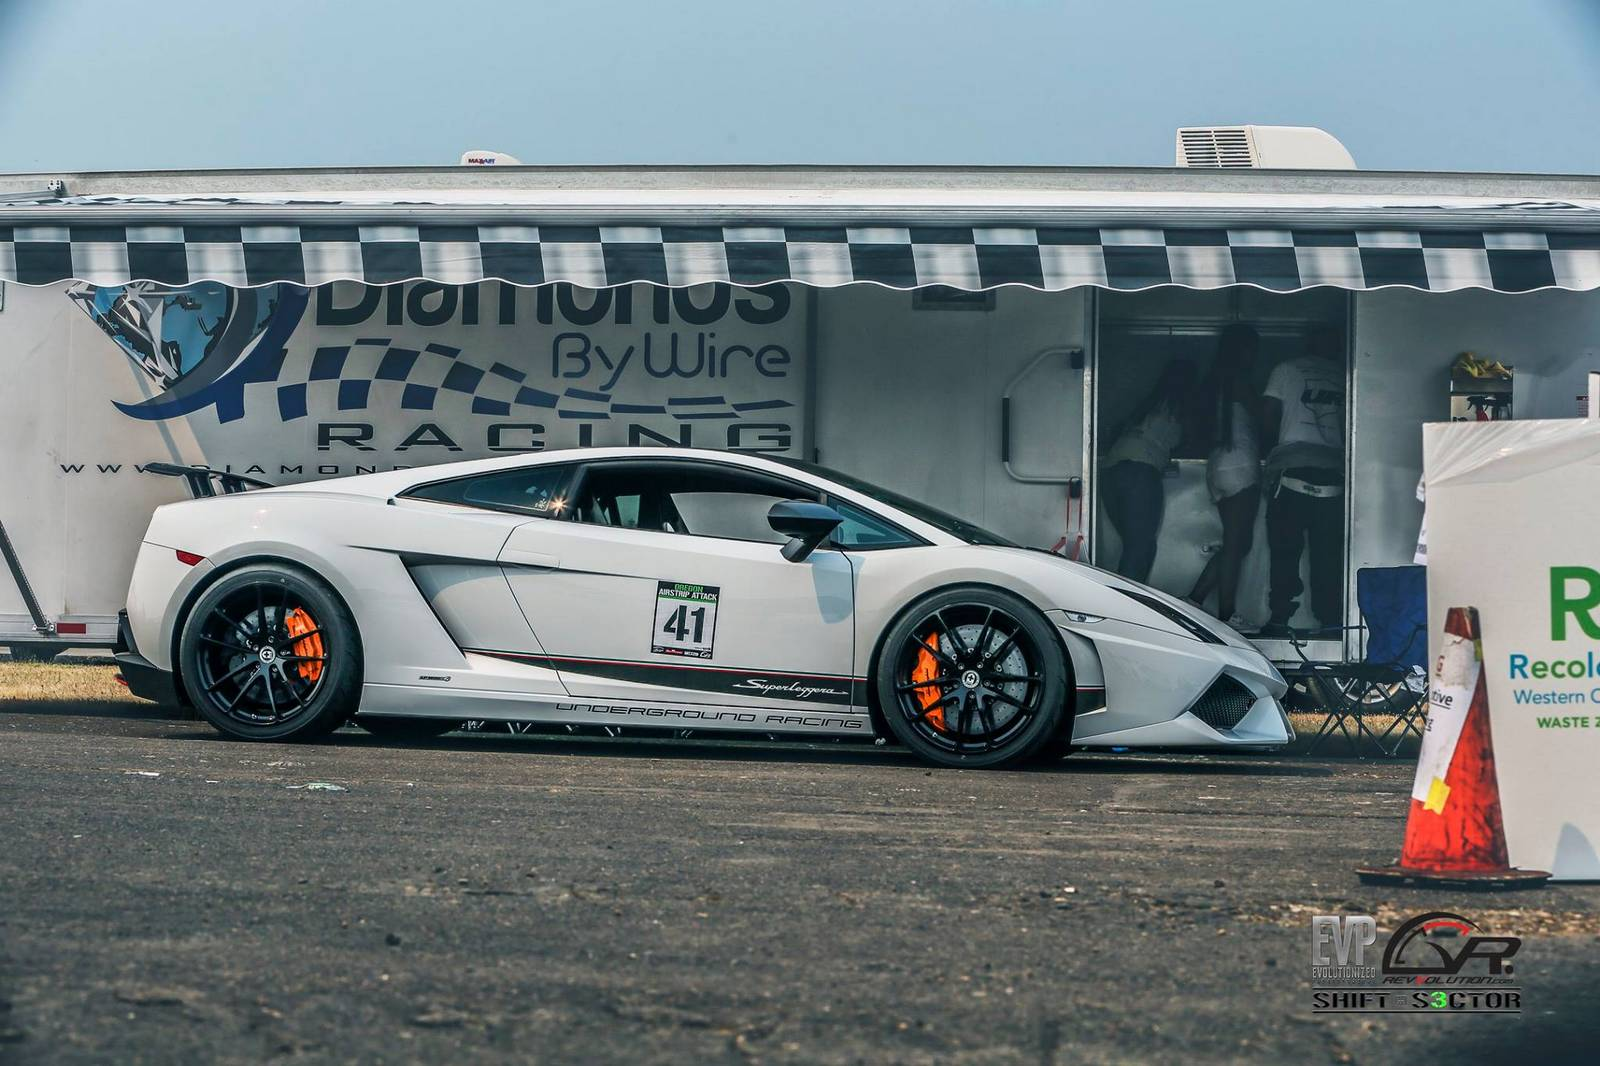 Meet the World's Fastest Lamborghini!